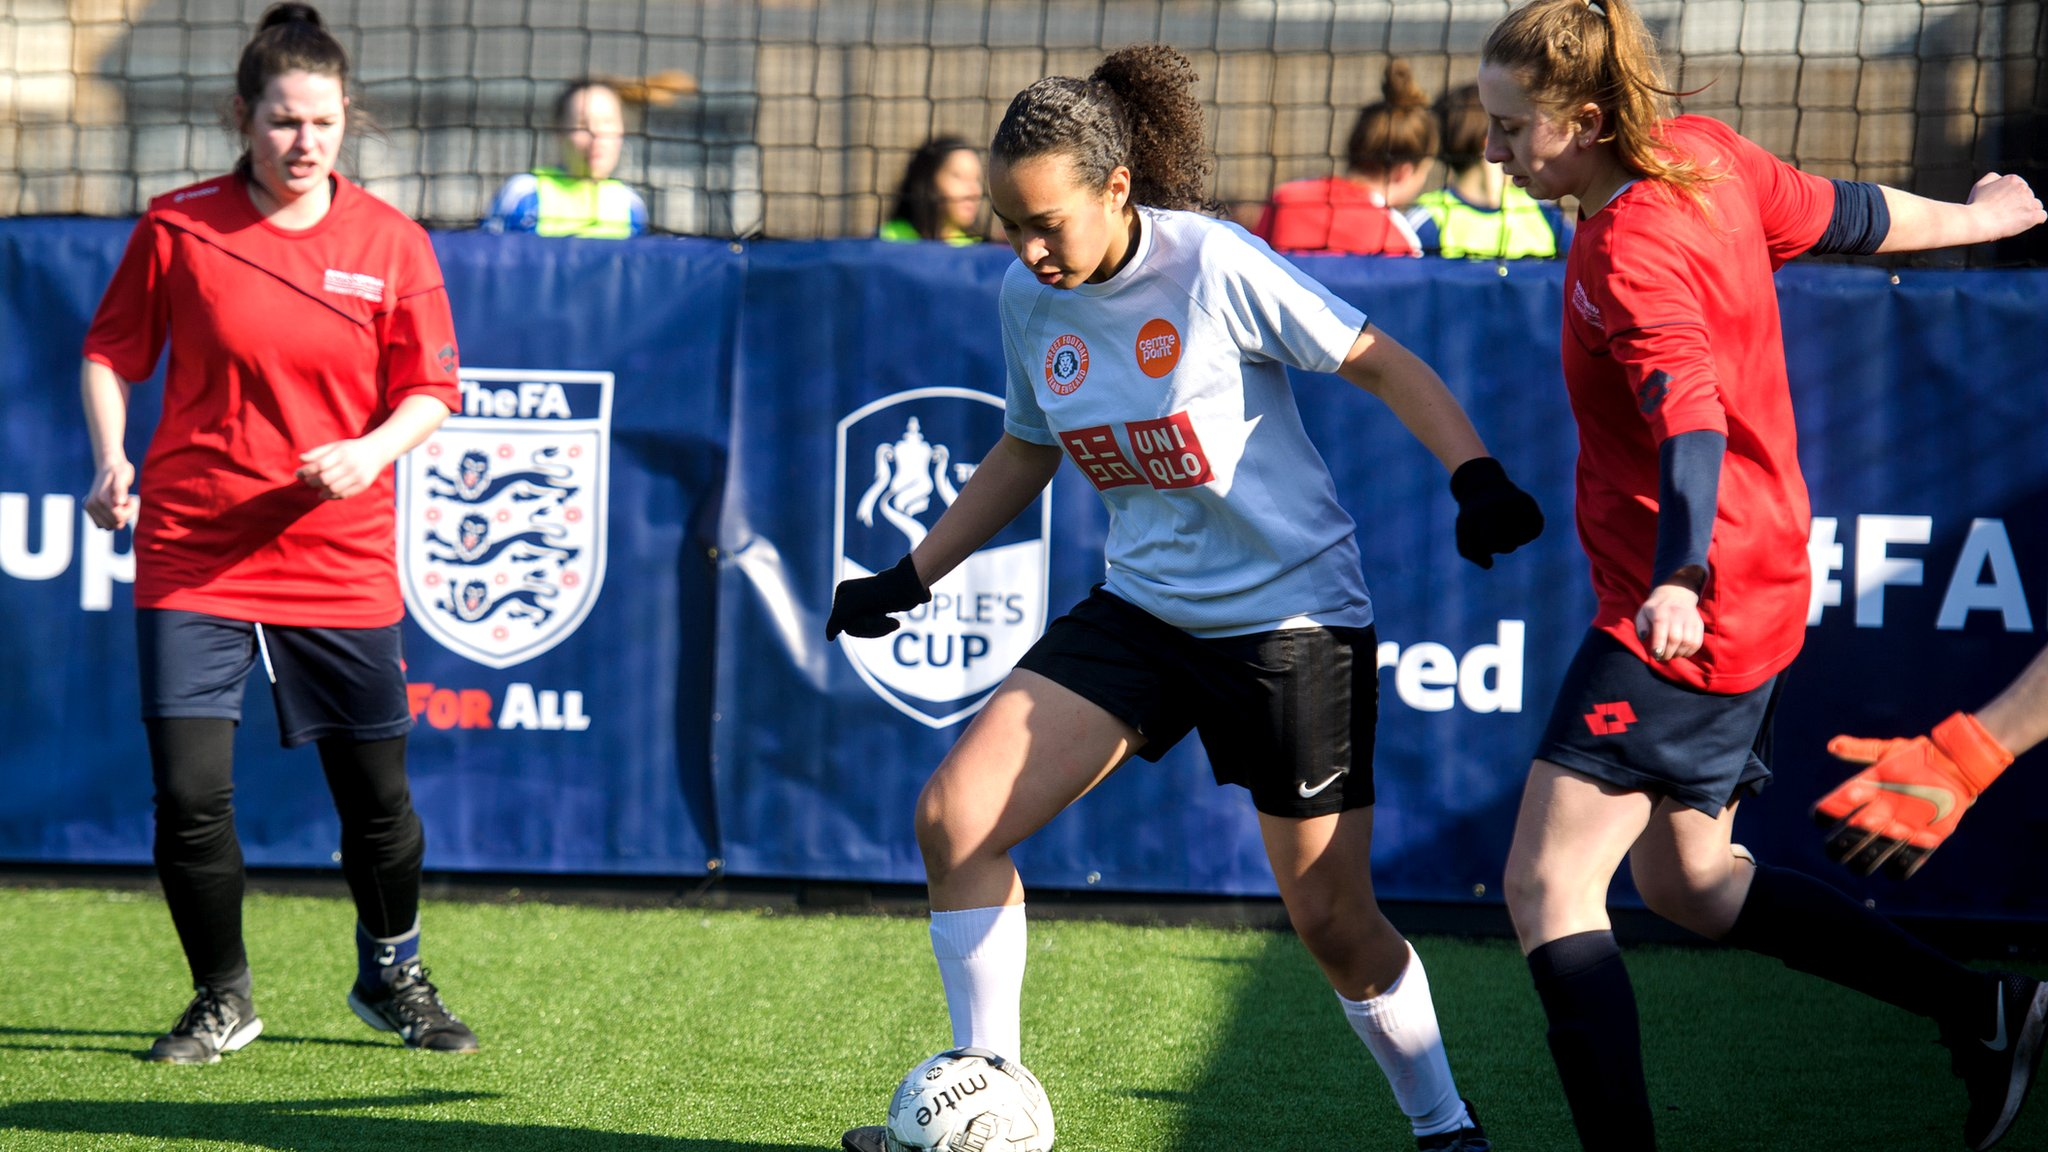 FA People's Cup 2019: Last chance to sign up for nation's biggest free five-a-side tournament